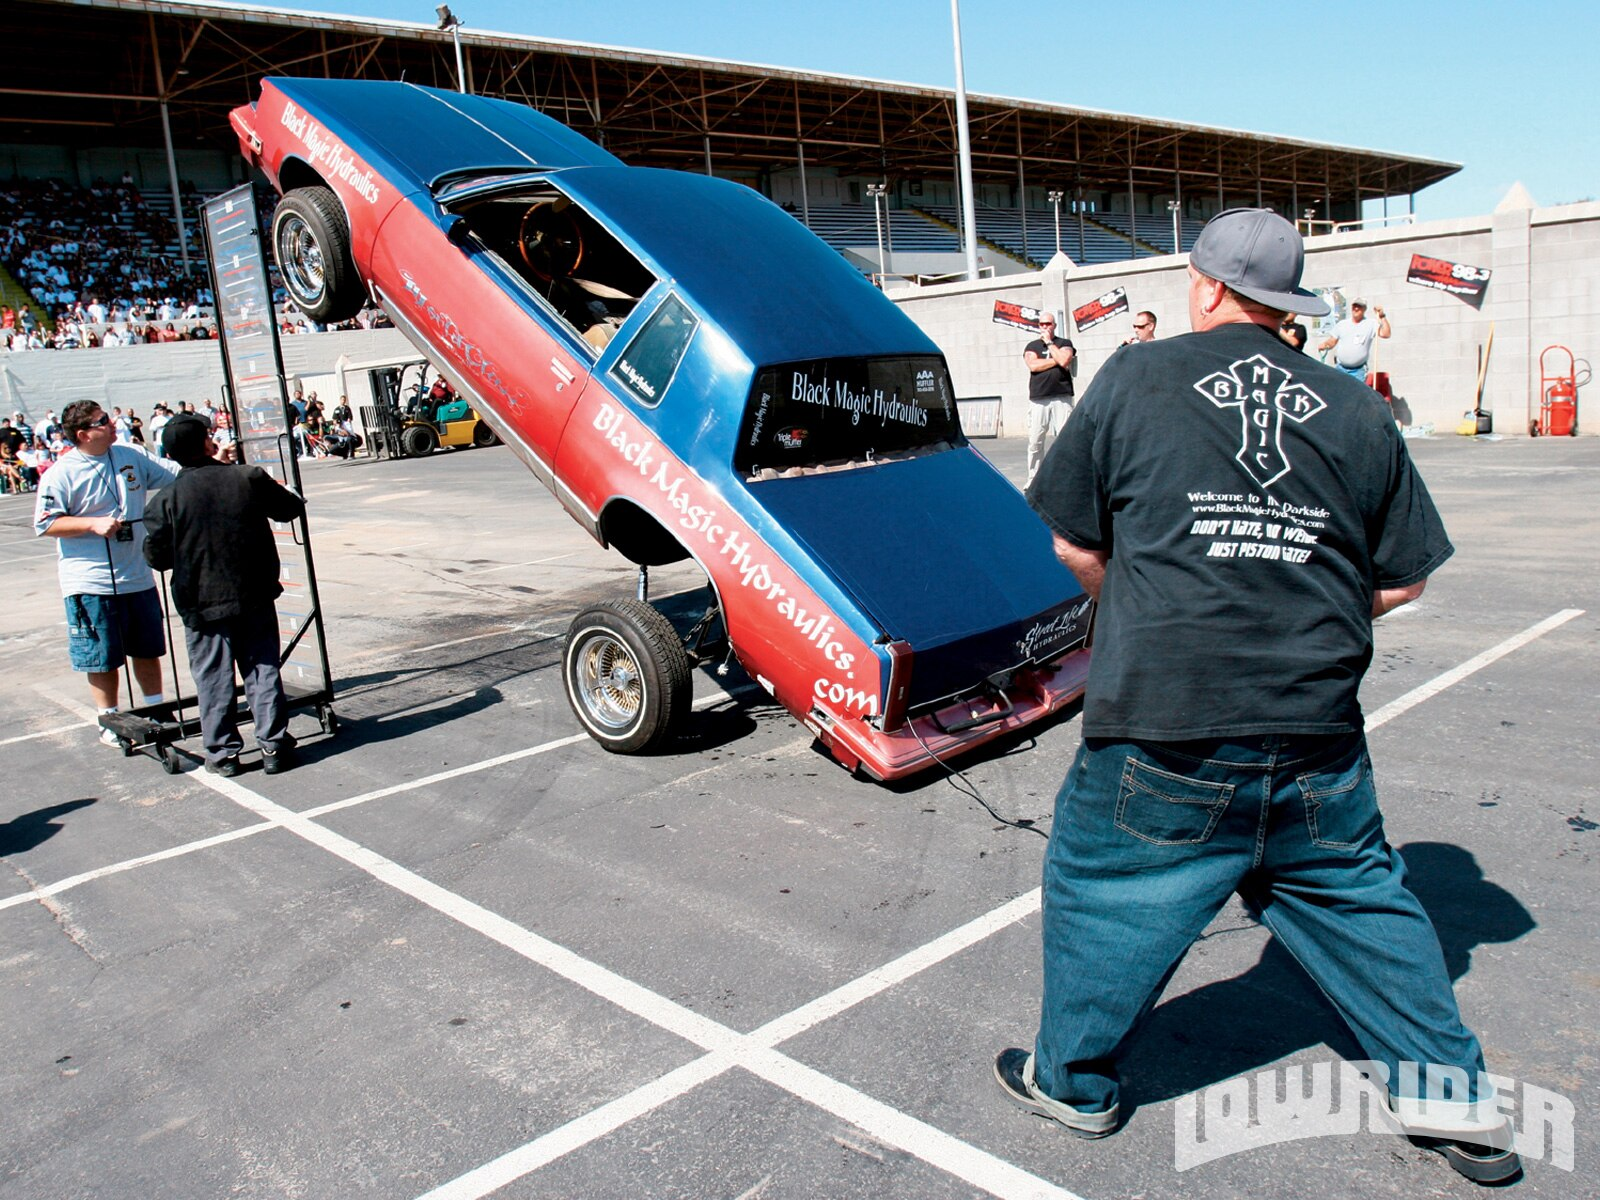 Ron from Black Magic Hydraulics was first up in the Double-Pump Hop and stayed that way in the standings.